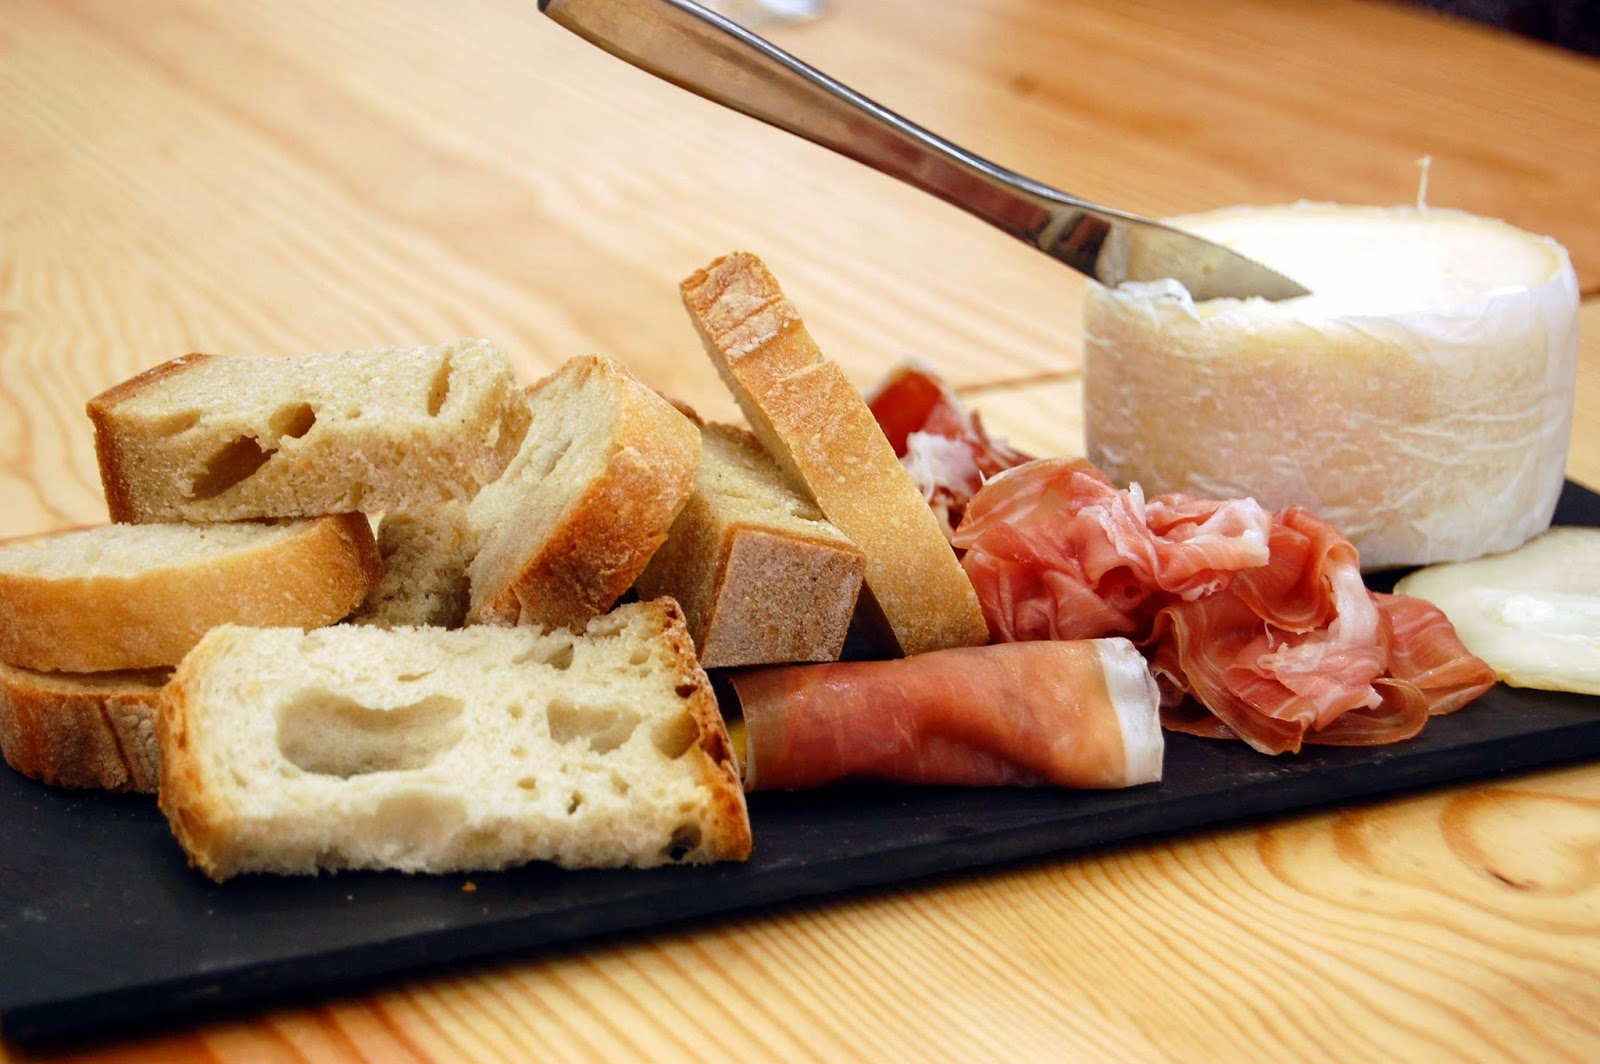 Stitch & Bear - Eat Drink Walk Petiscos Lisbon - Cheese and meat platter